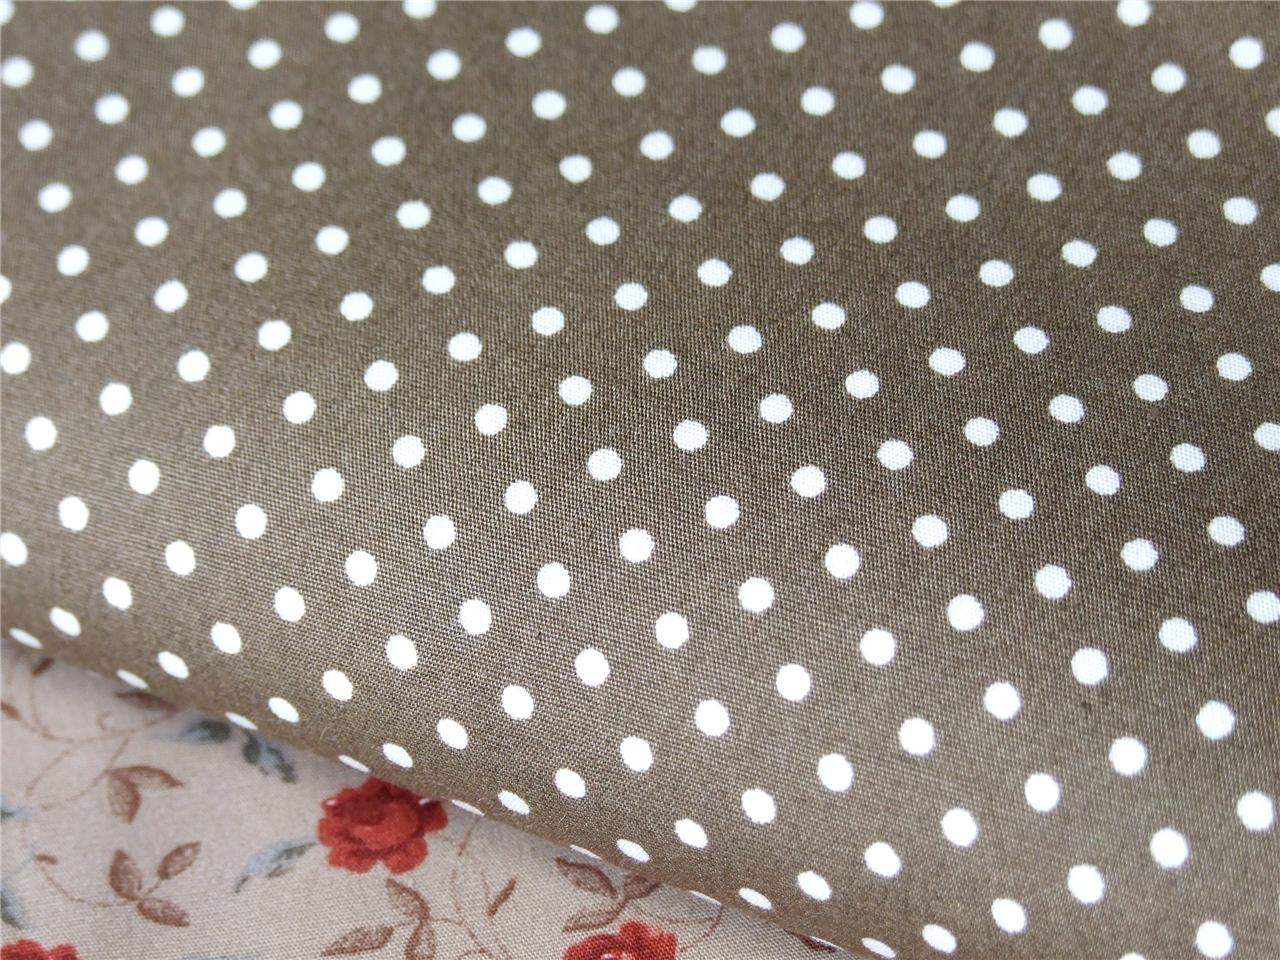 100% cotton BROWN BEIGE TAN Spots 3mm dotty FABRIC dress craft quilting bunting